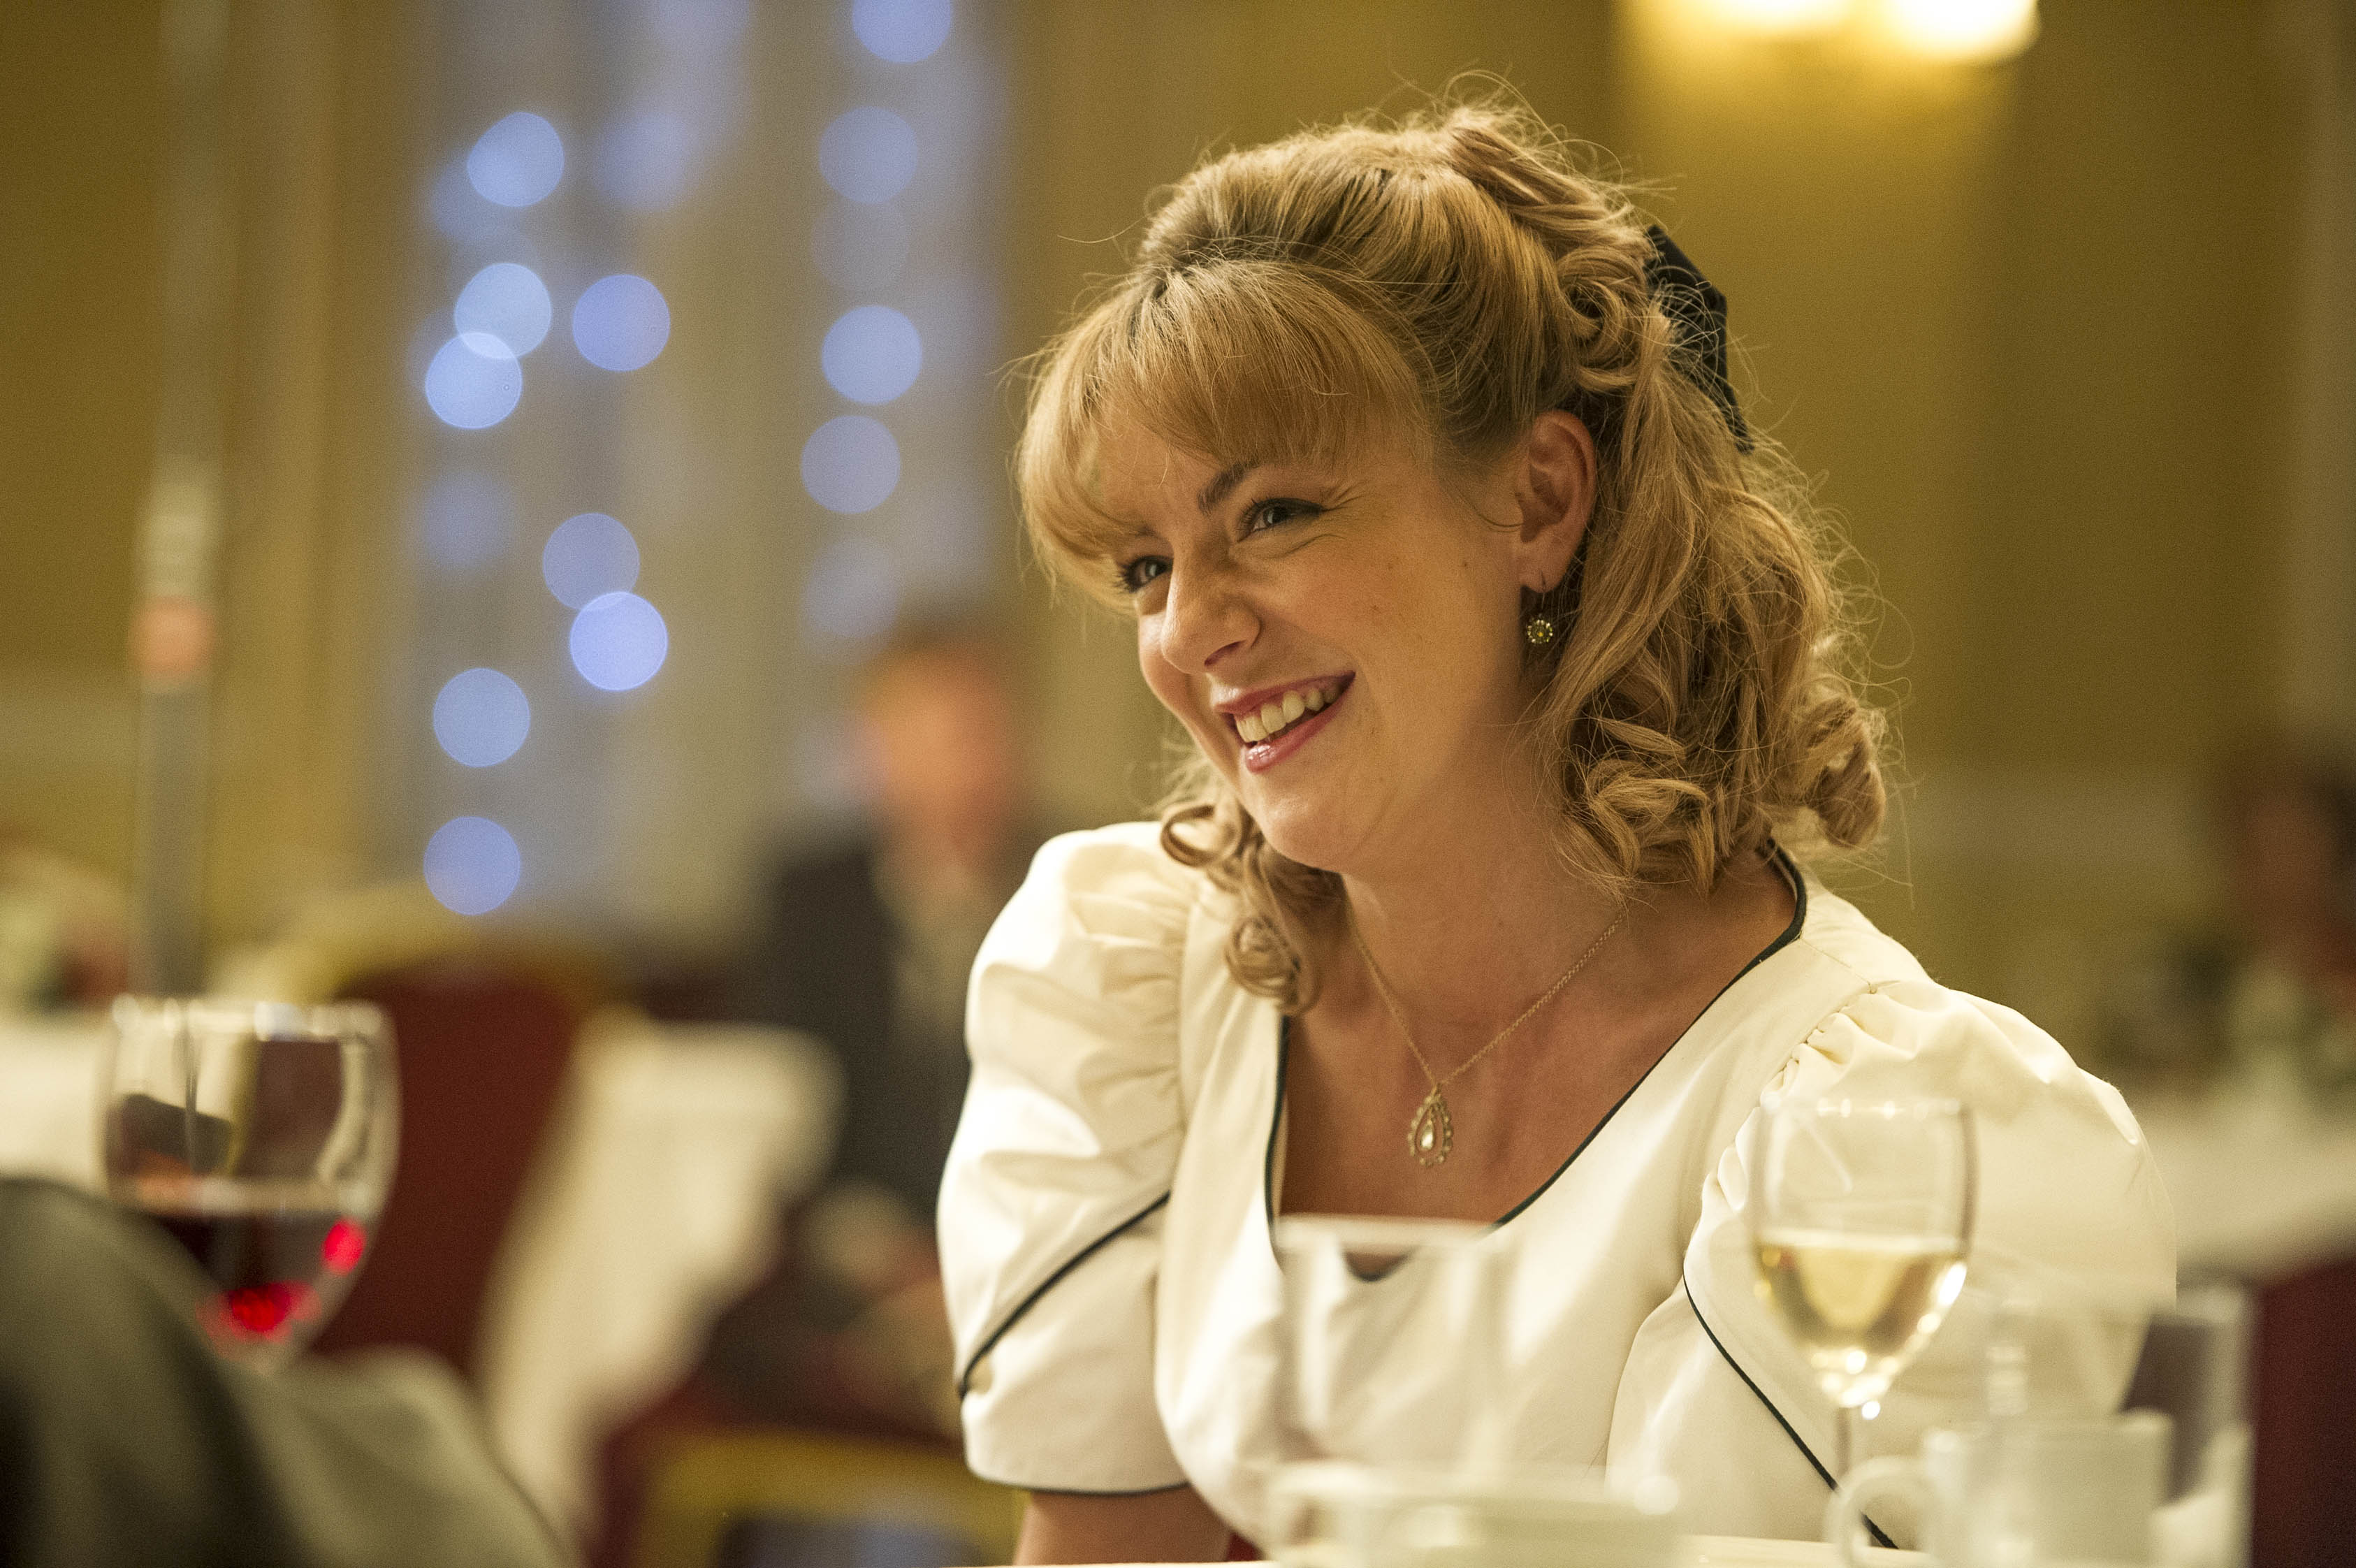 Nation goes bonkers for Sheridan Smith in The Widower – and here's the 8 most sappy tweets